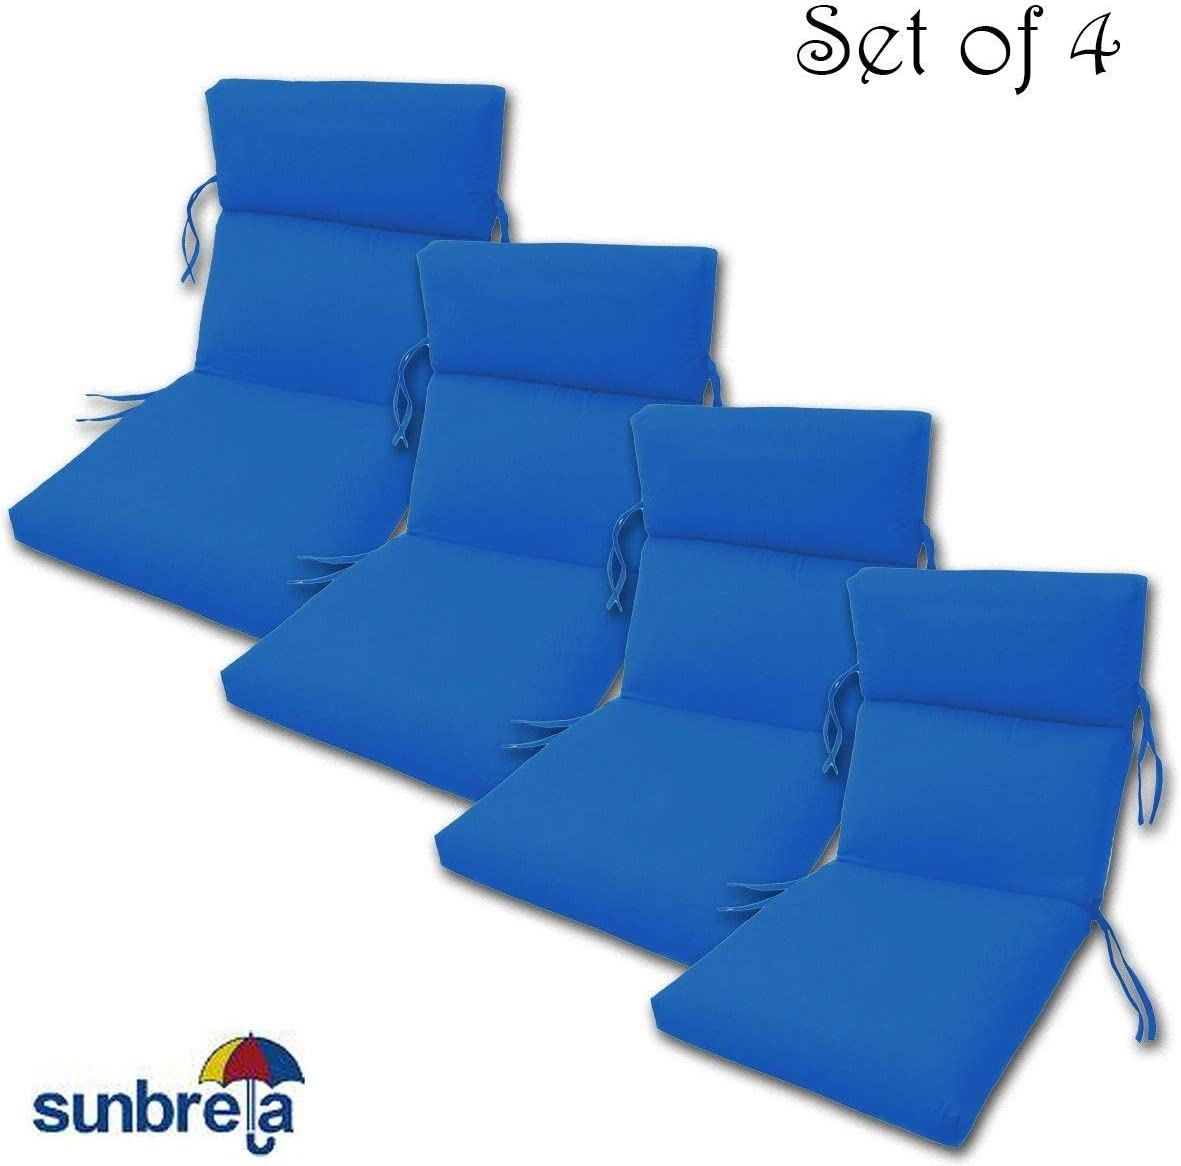 Comfort Classics Inc. Set of 4 Outdoor CHANNELED Chair Cushions 22W x 44L x 3H Hinge at 24 in Sunbrella Fabric Pacific Blue